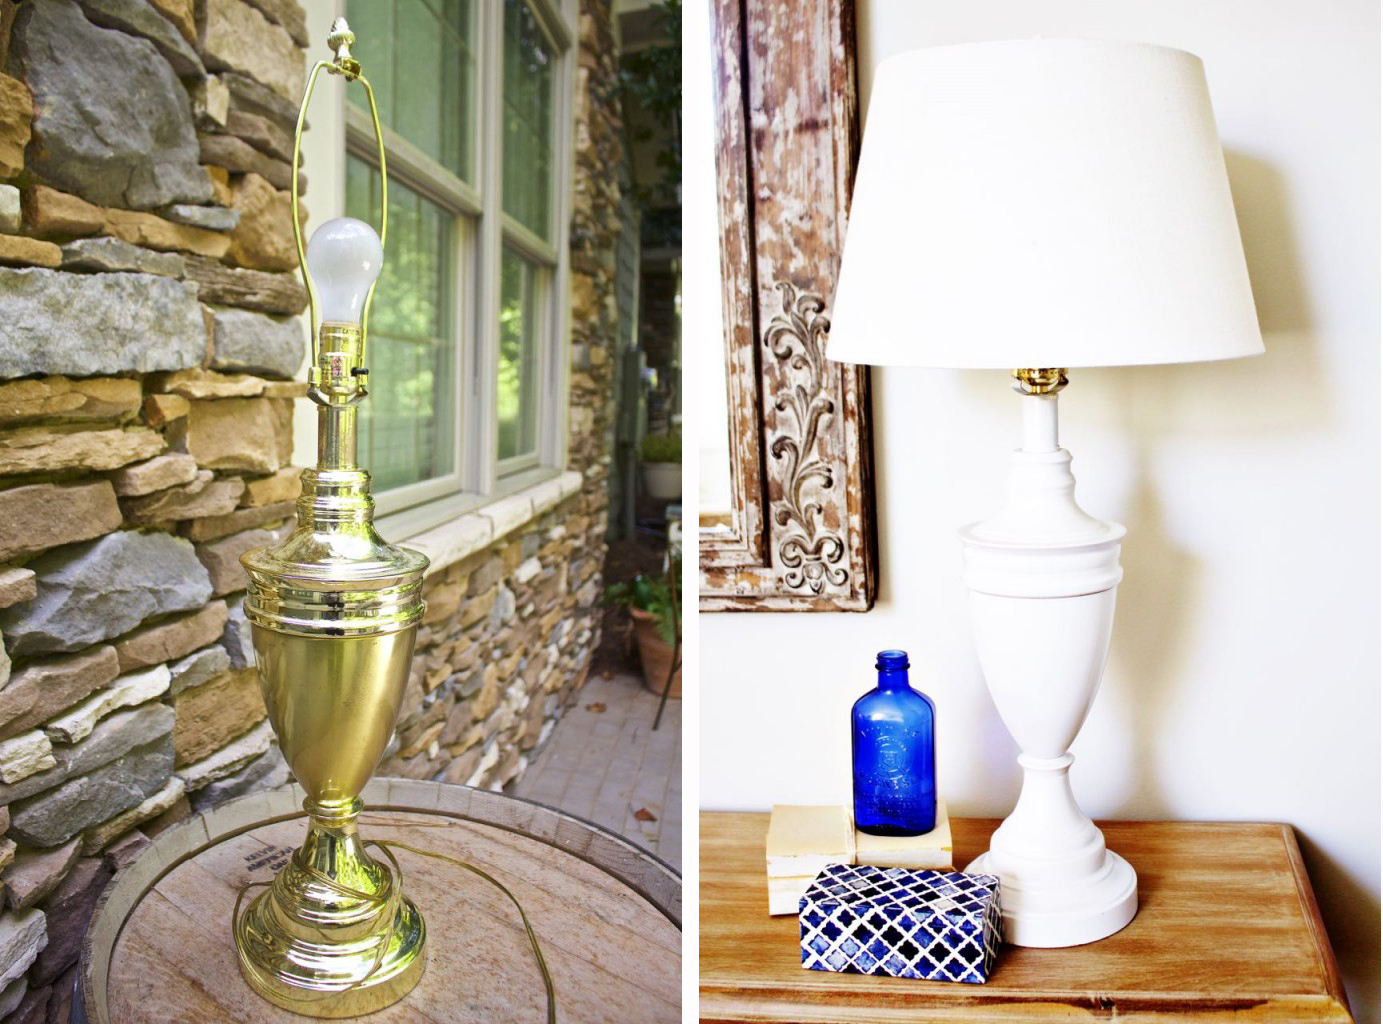 Awesome spray paint makeovers - This brass lamp looks so much better!